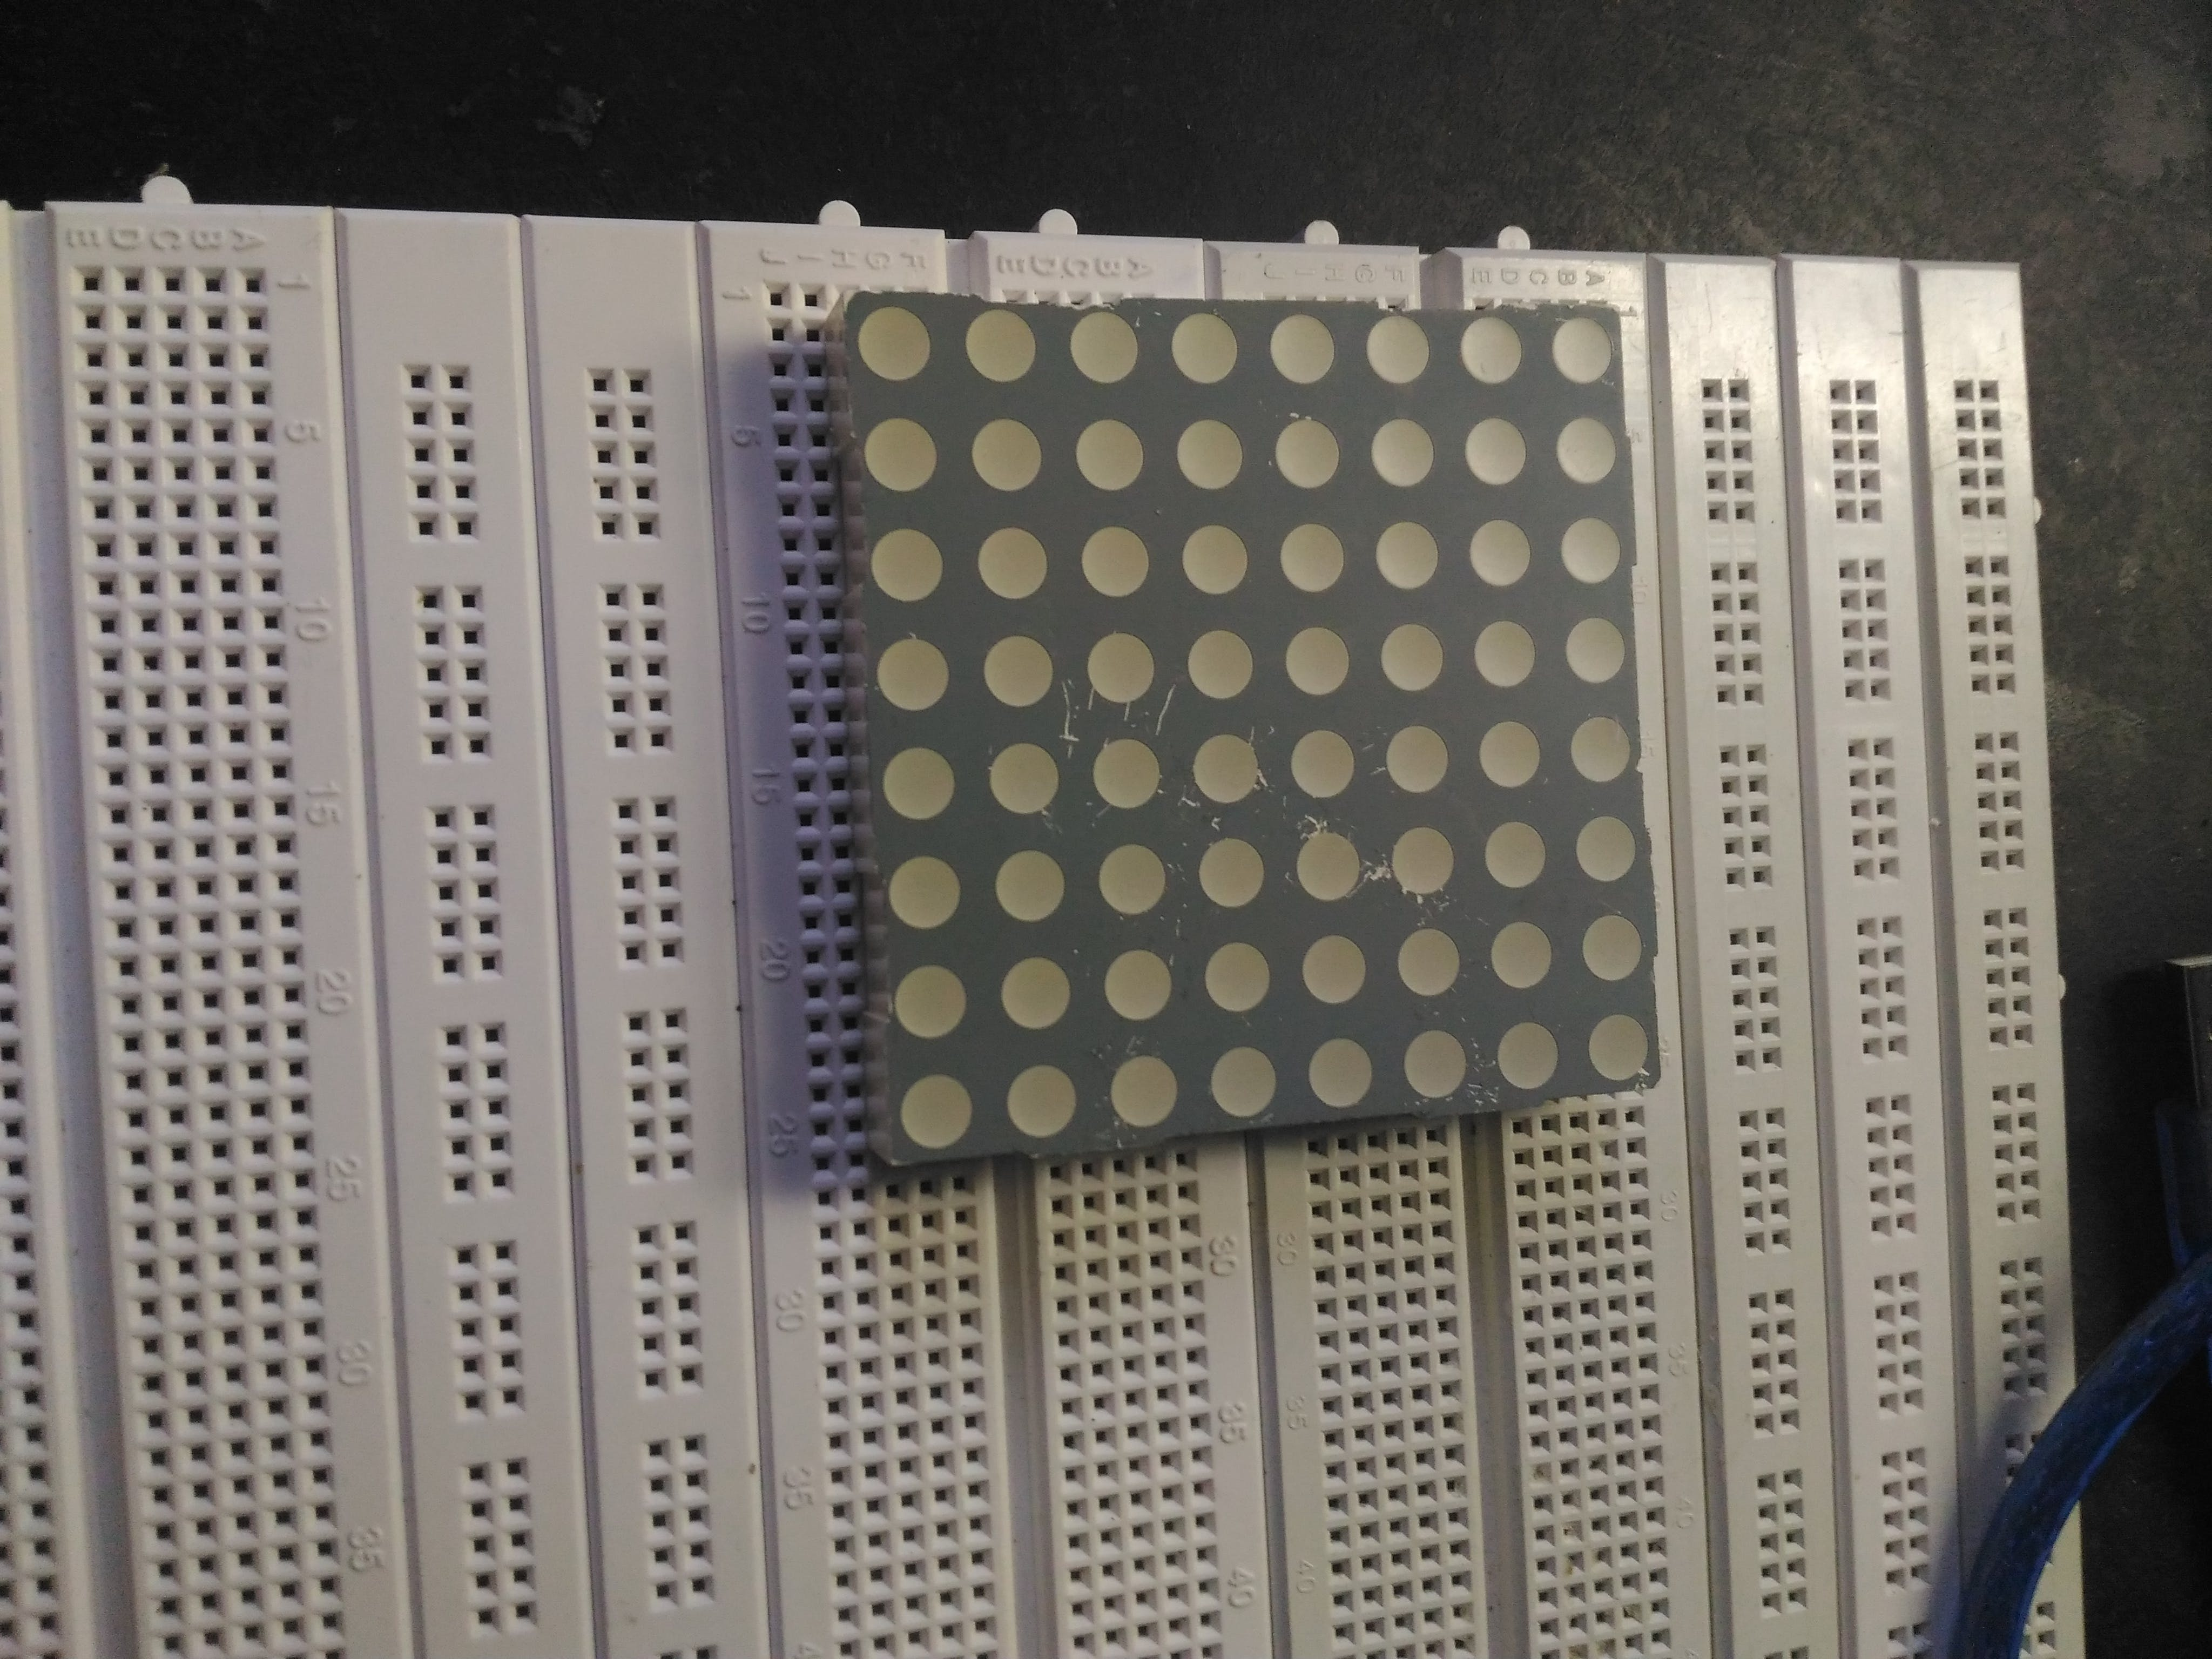 8x8 5mm LED Matrix